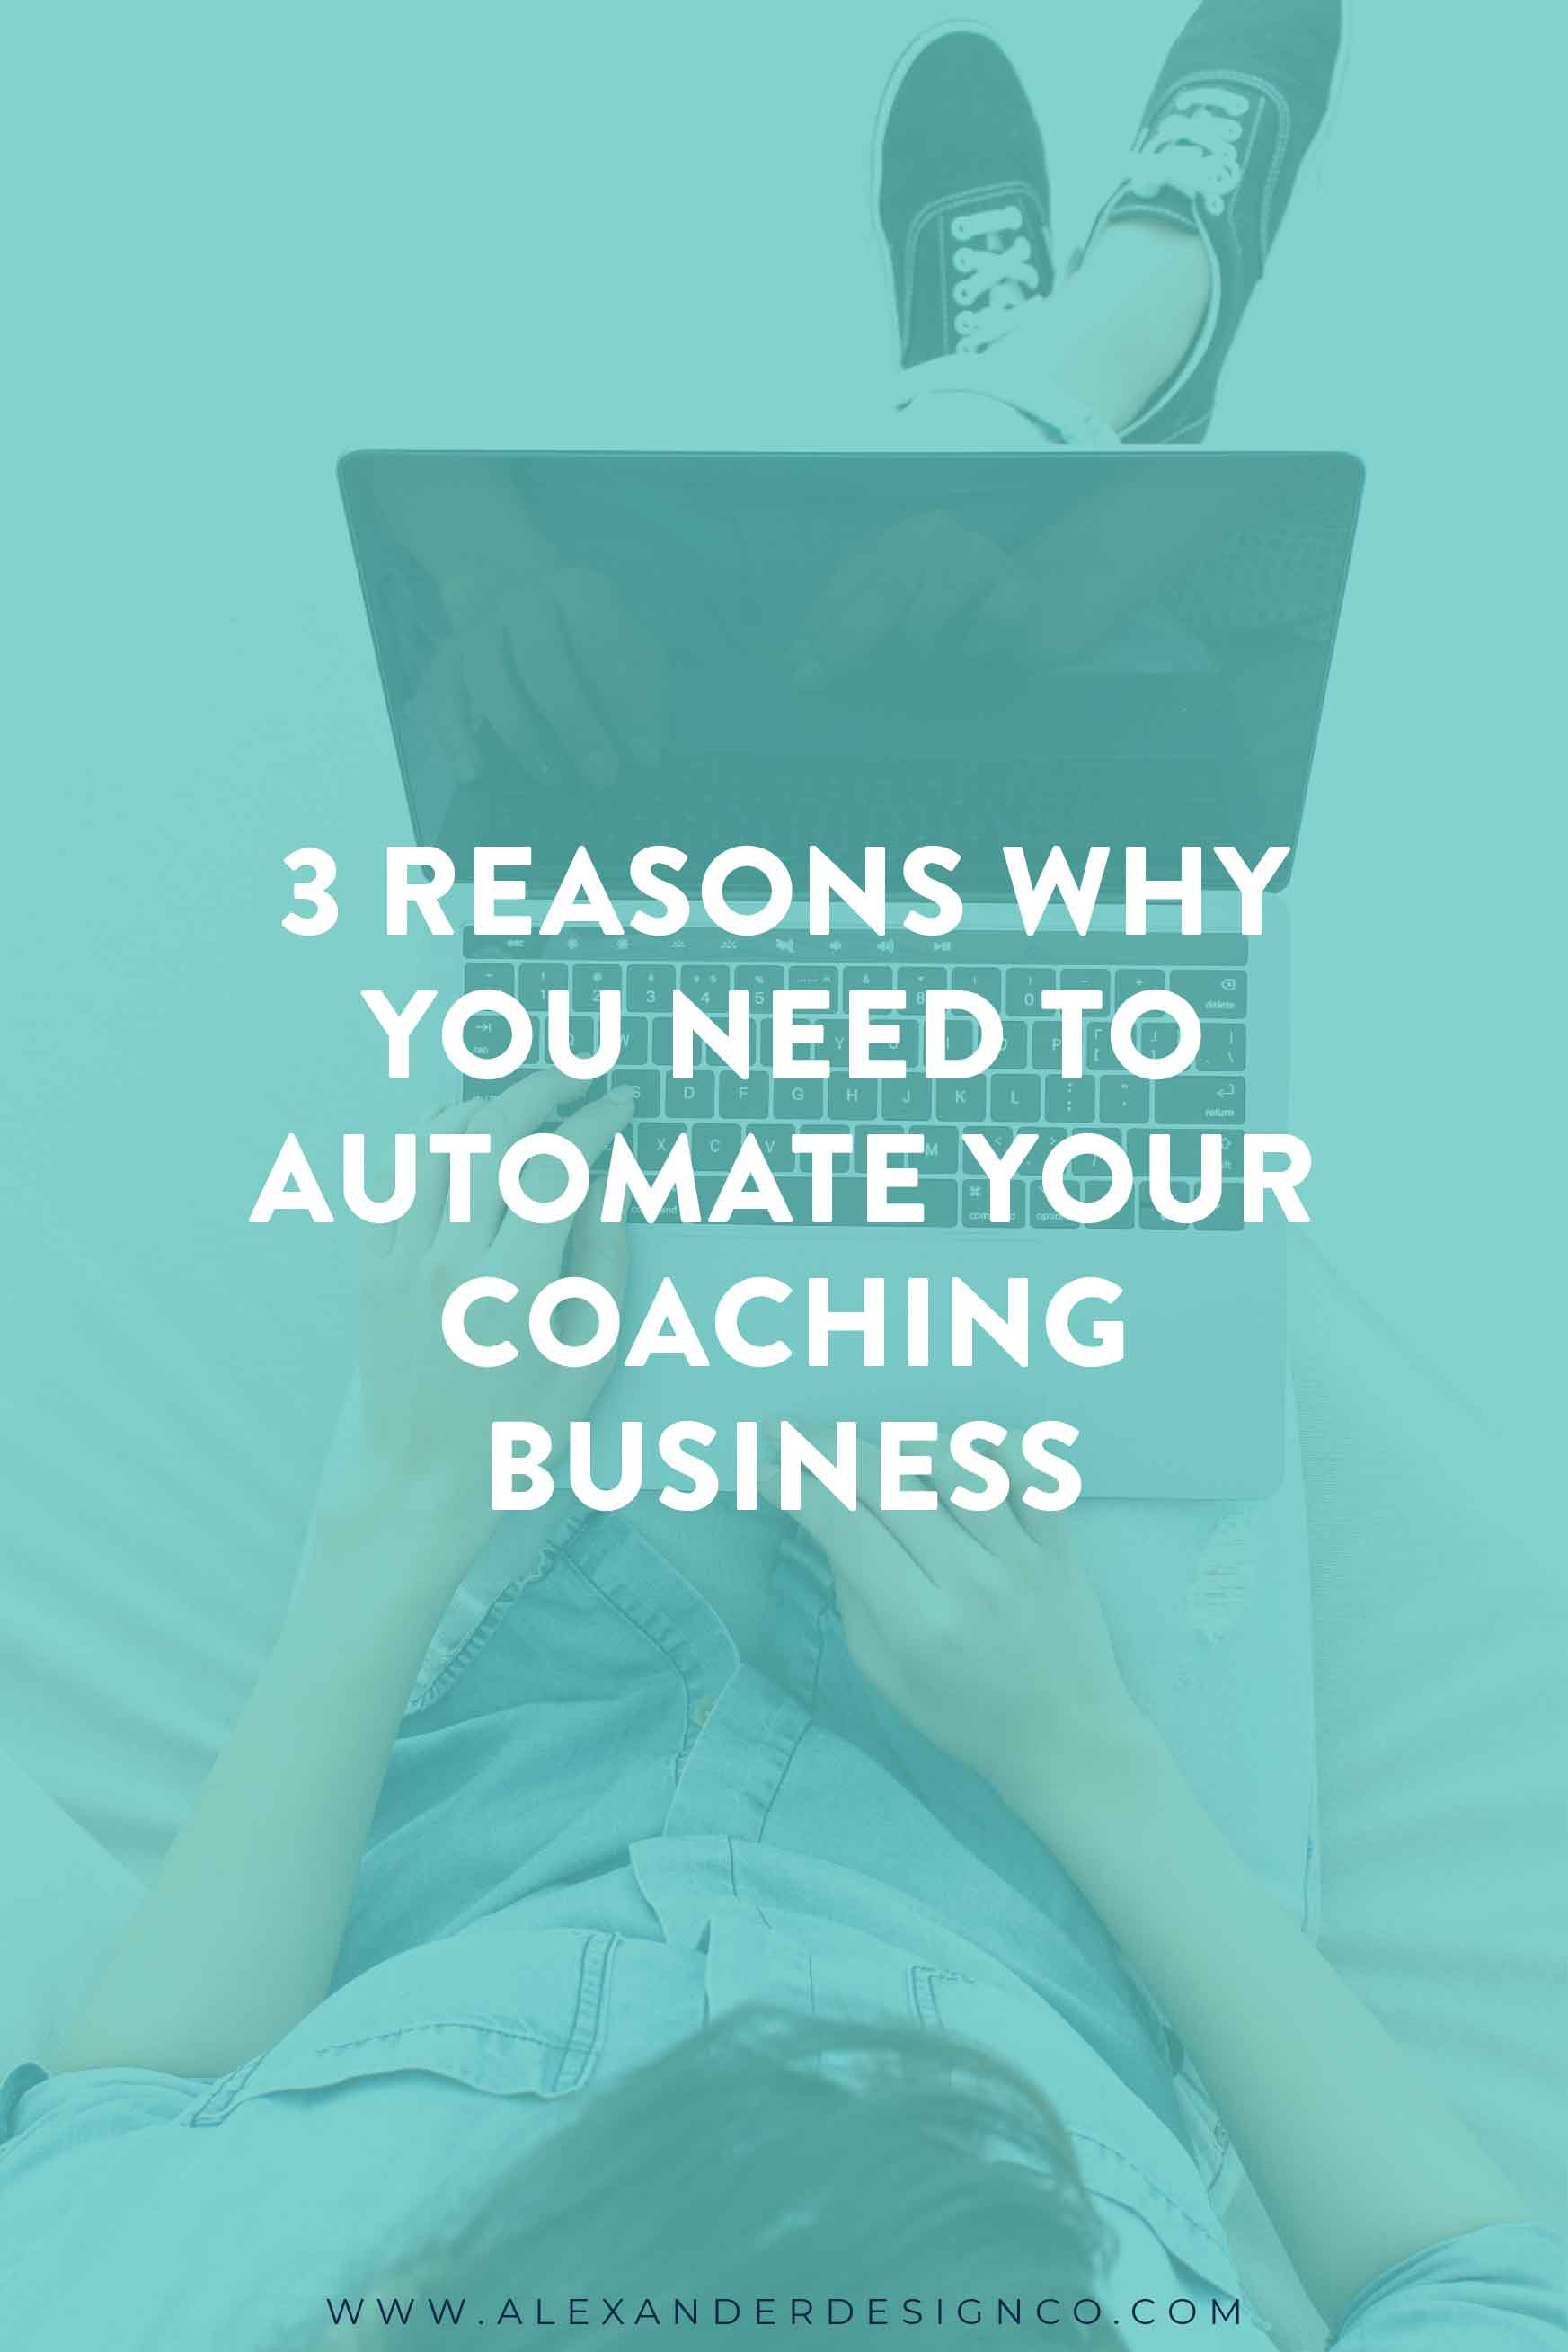 3 Reasons to automate your coaching biz | Alexander Design Company - Squarespace website design for online coaches